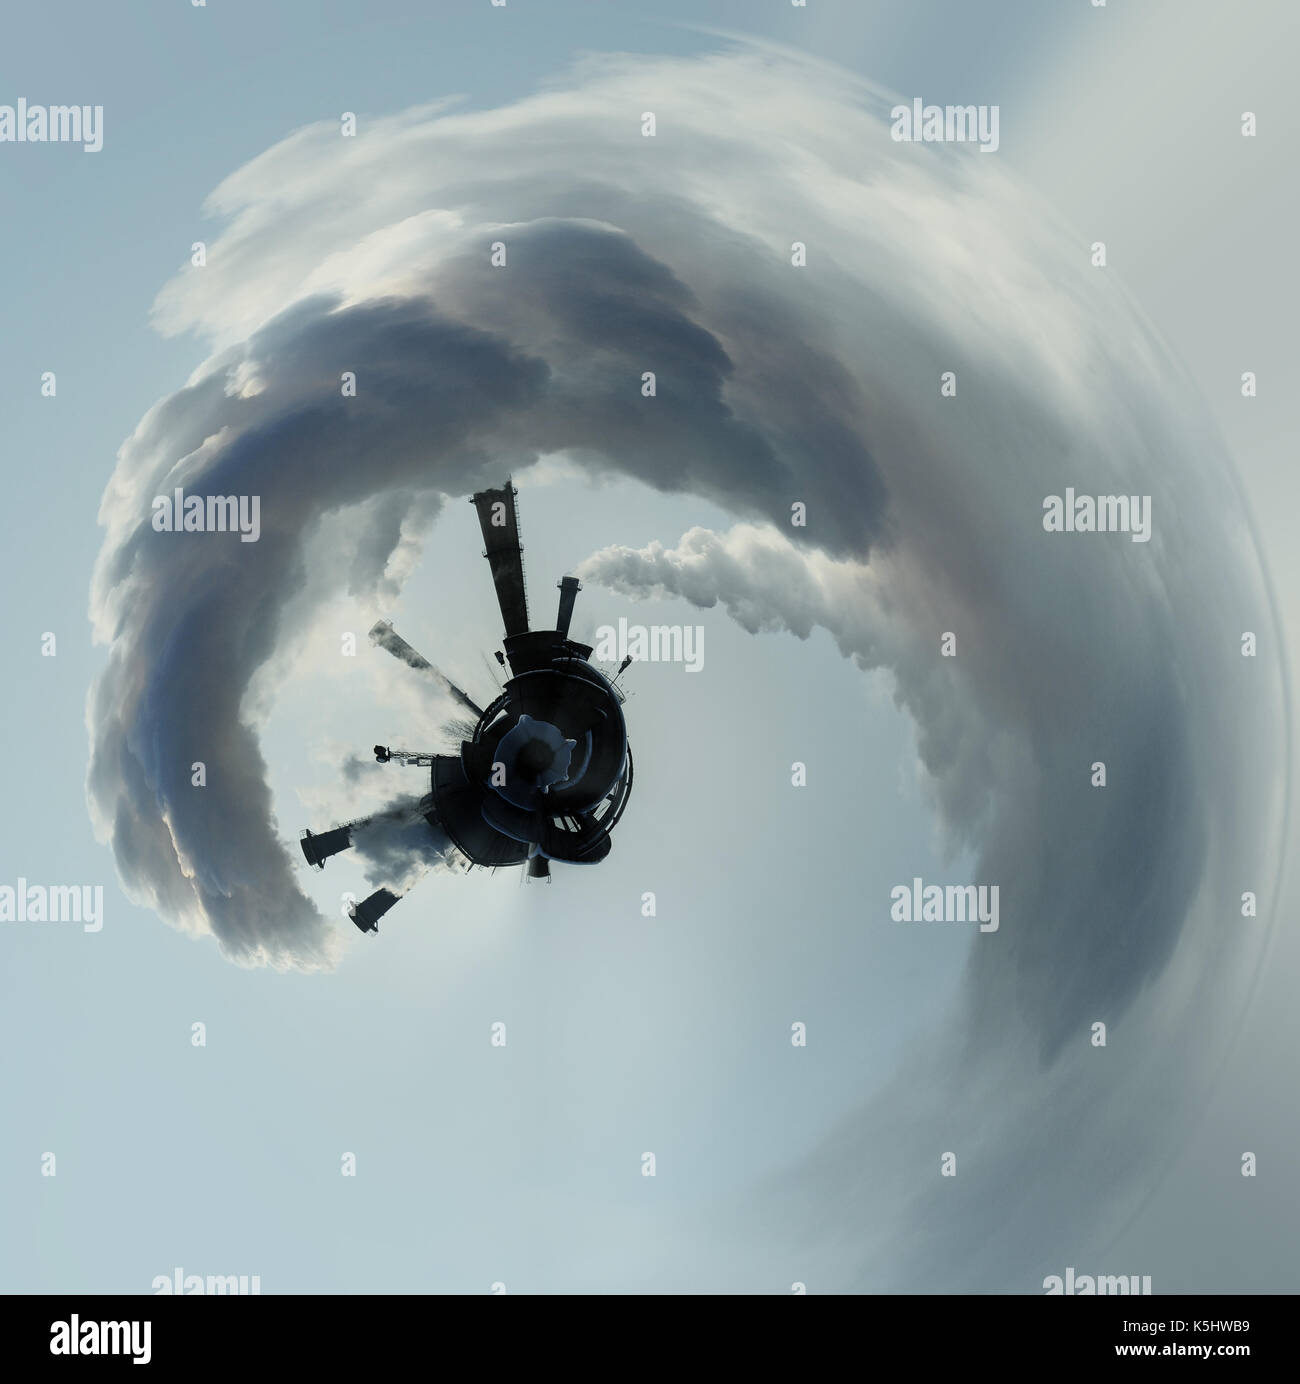 Little planet 360 degree sphere. Smoke from factory pipes. Conceptual image - Stock Image